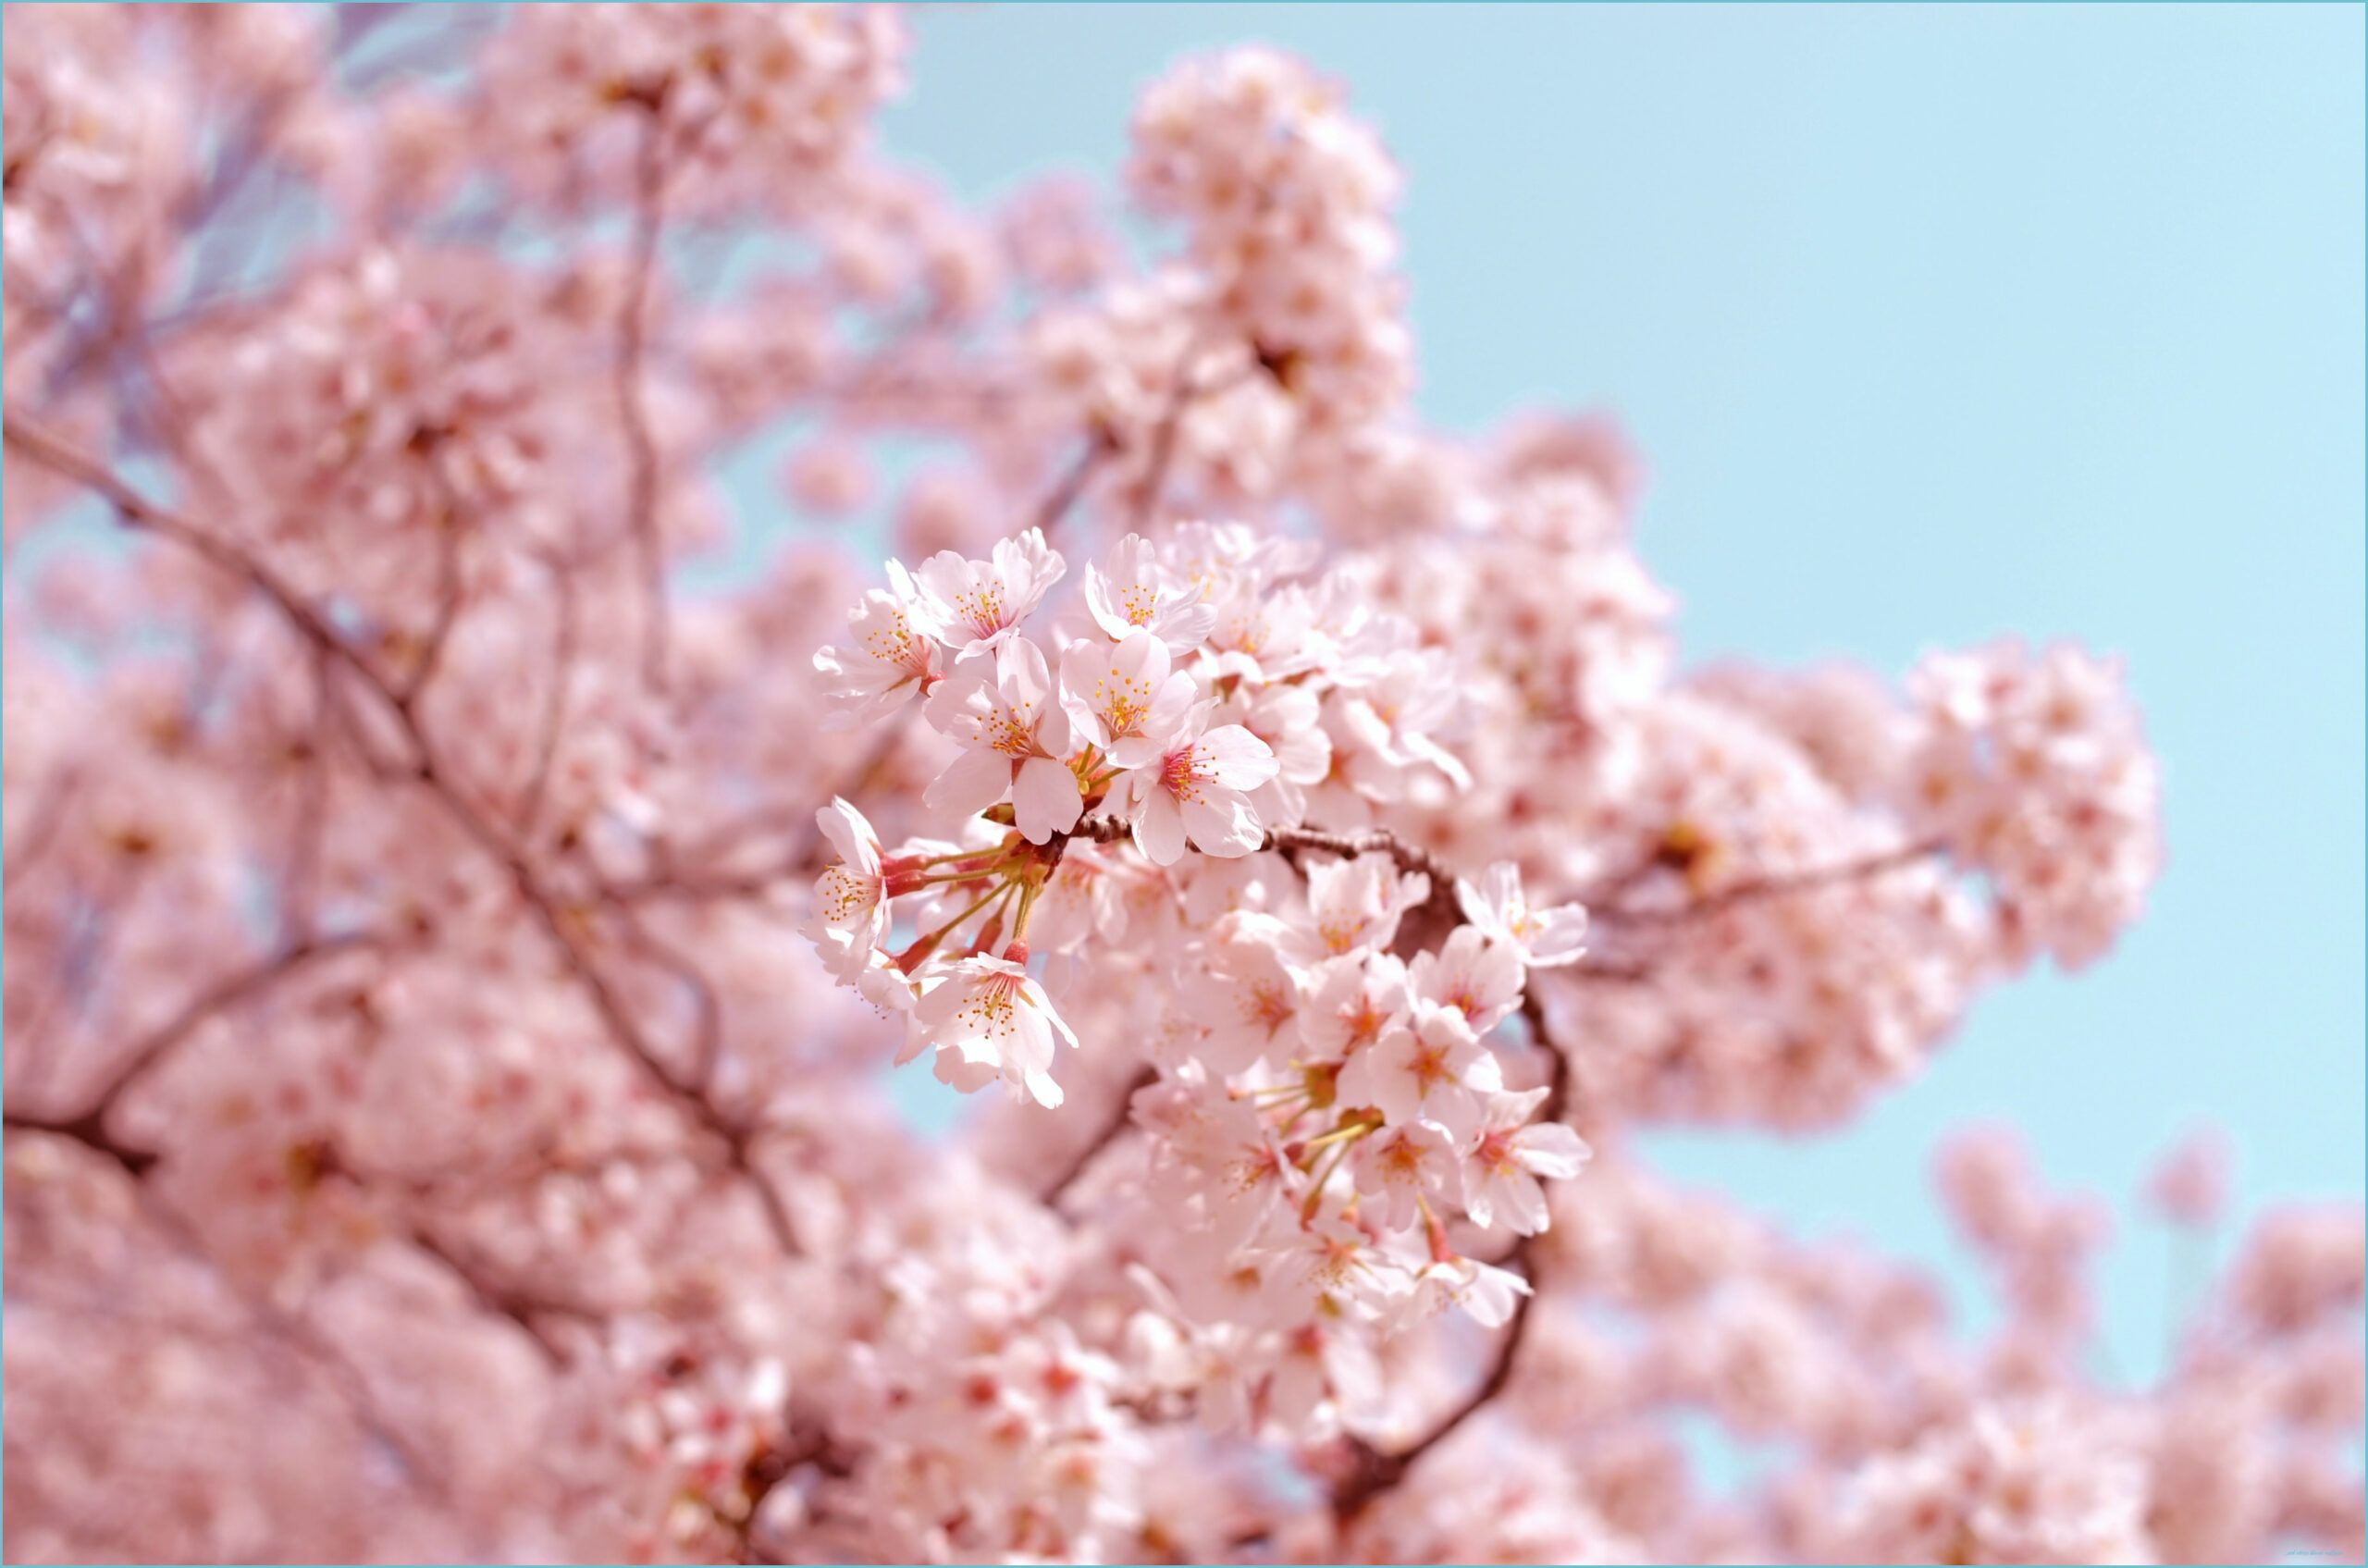 10 Solid Evidences Attending Pink Cherry Blossom Wallpaper Is Good For Your Career Development Pink Che Sakura Flower Cherry Blossom Wallpaper Cherry Blossom